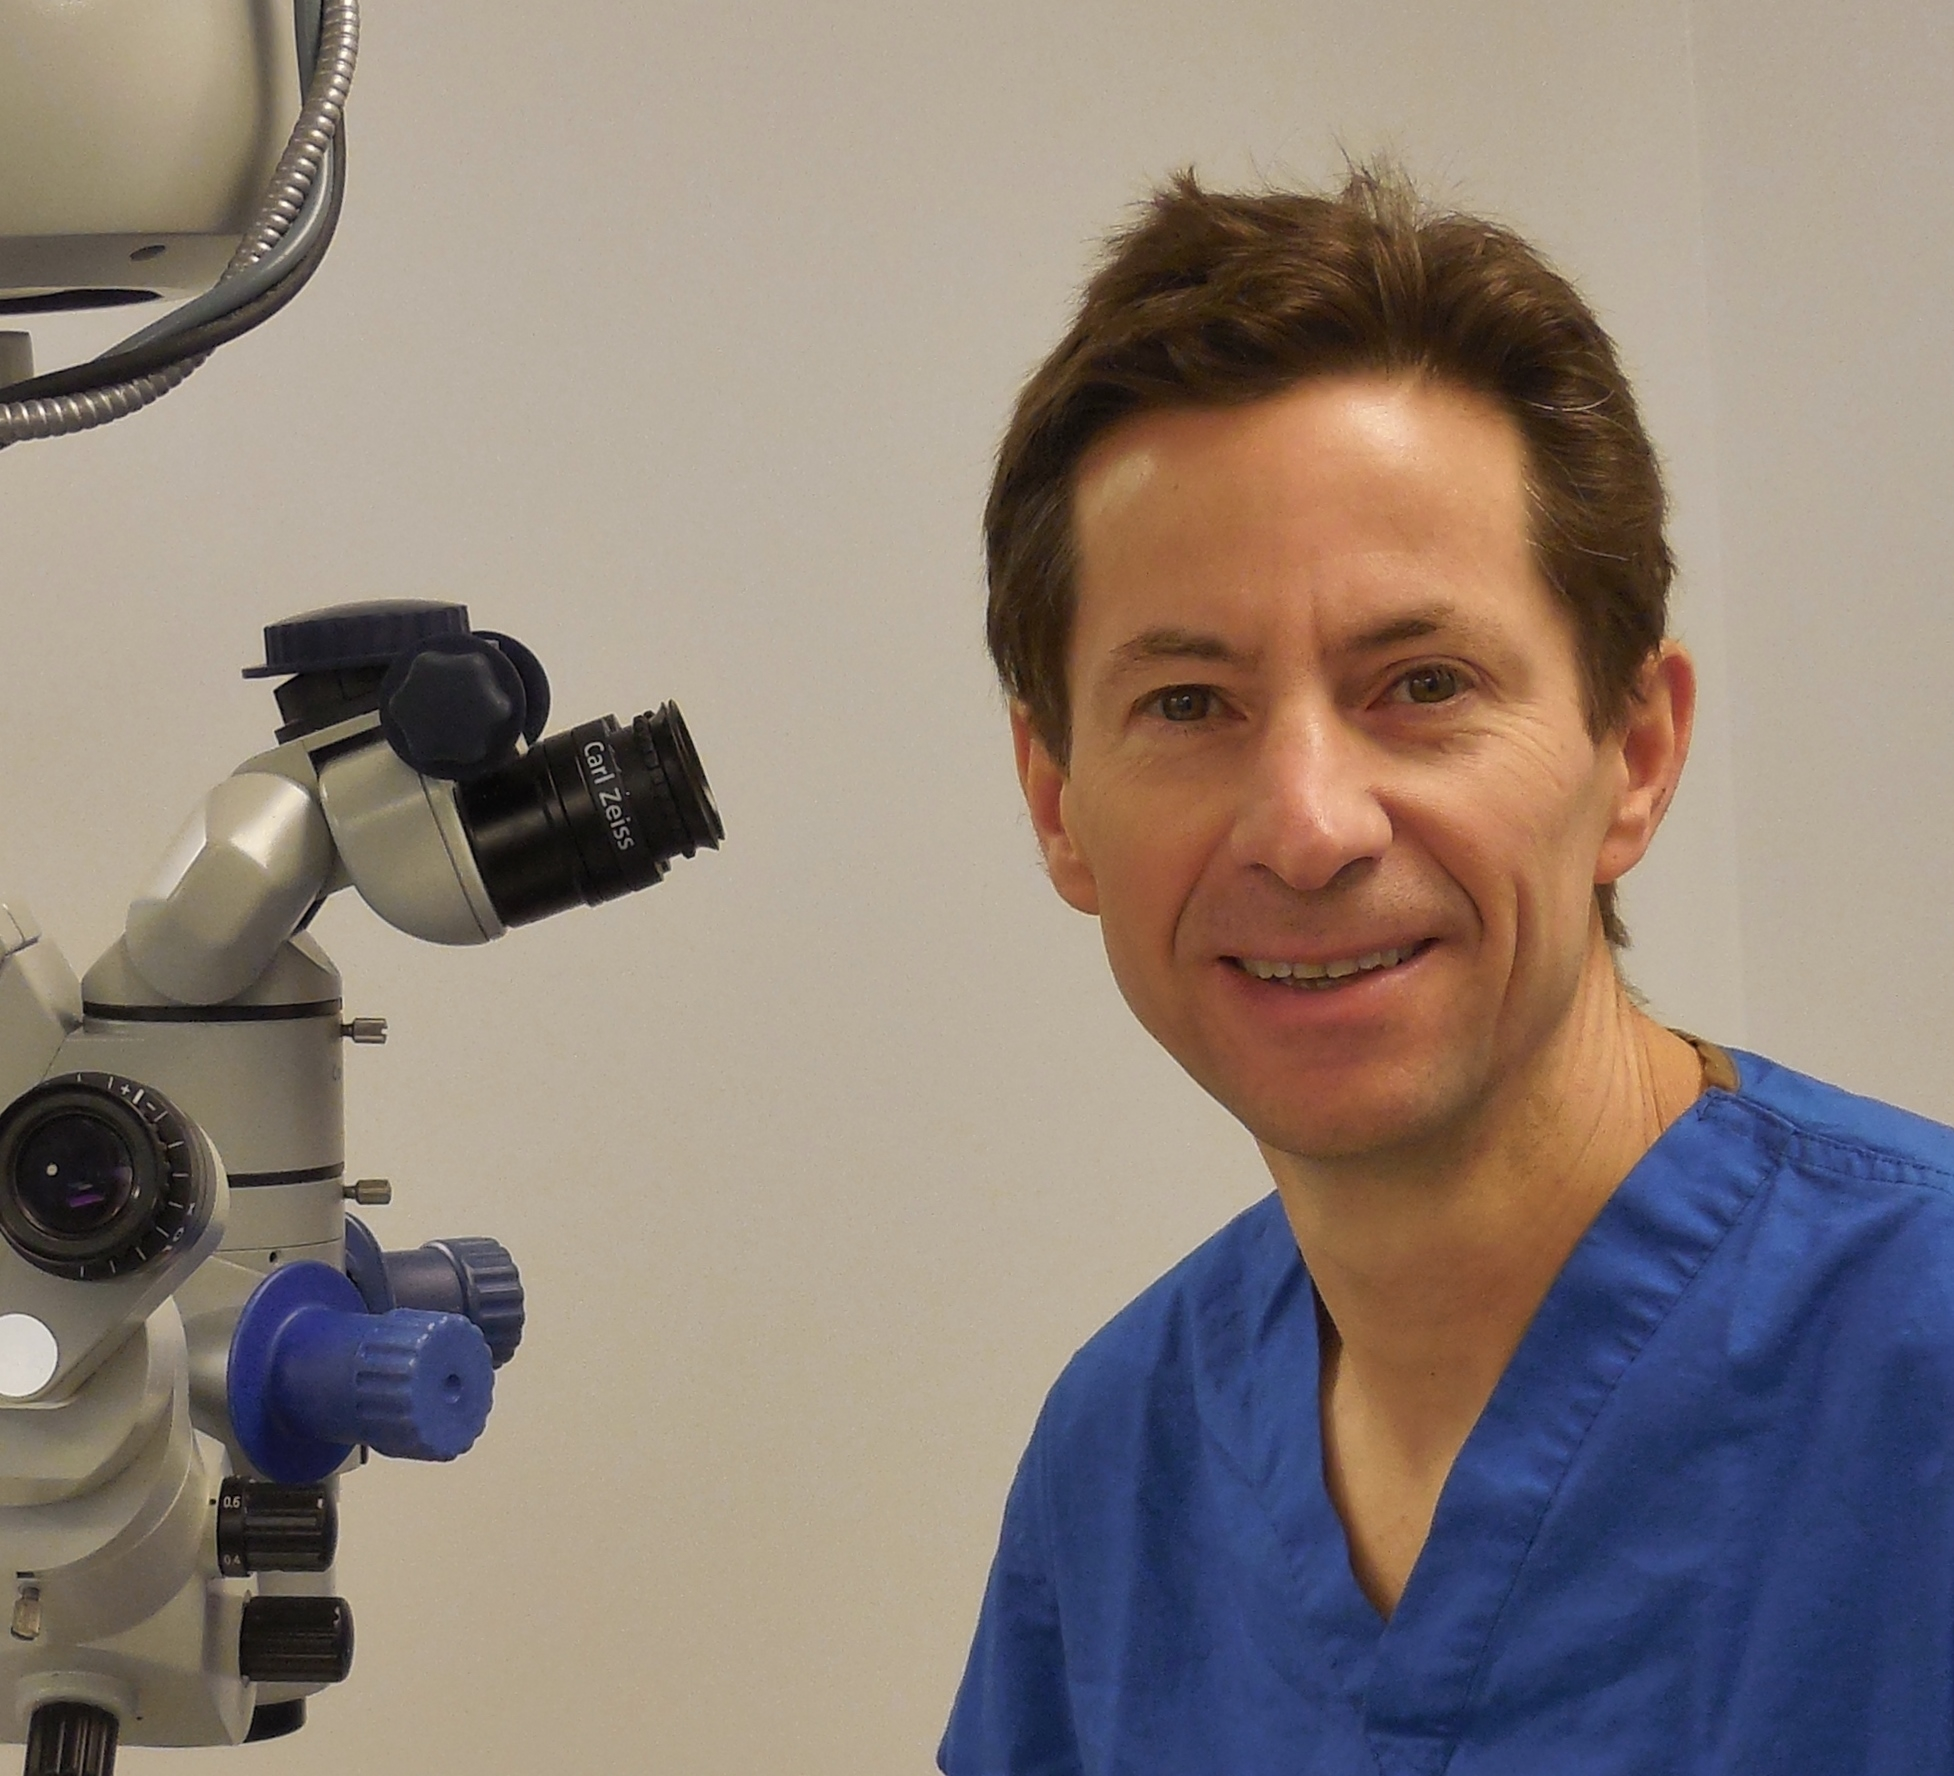 NY Vision Group - Dr. Harry R. Koster, MD image 0